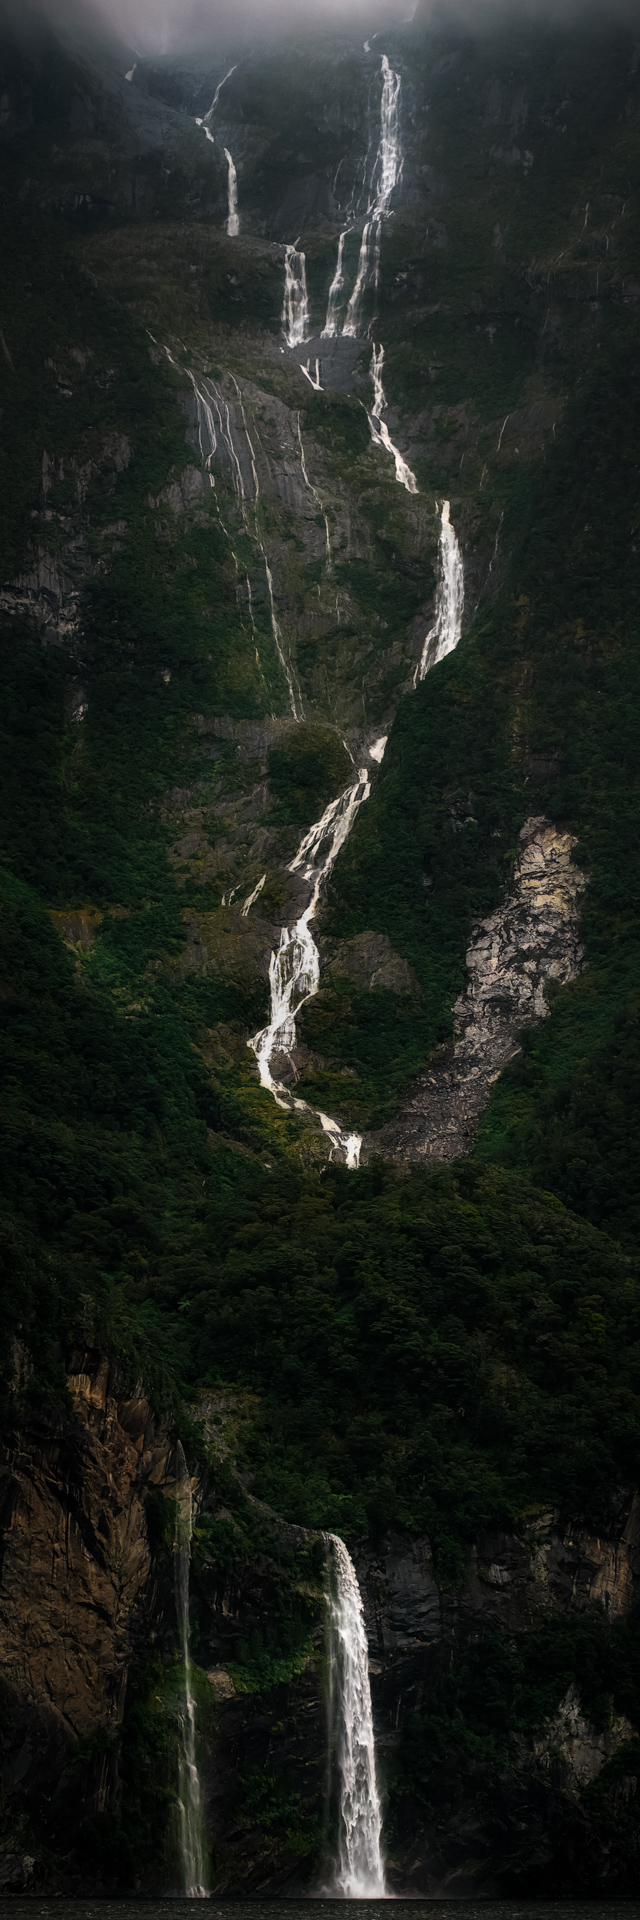 Waterfalls of Milford Sound, Fiordland National Park 2017